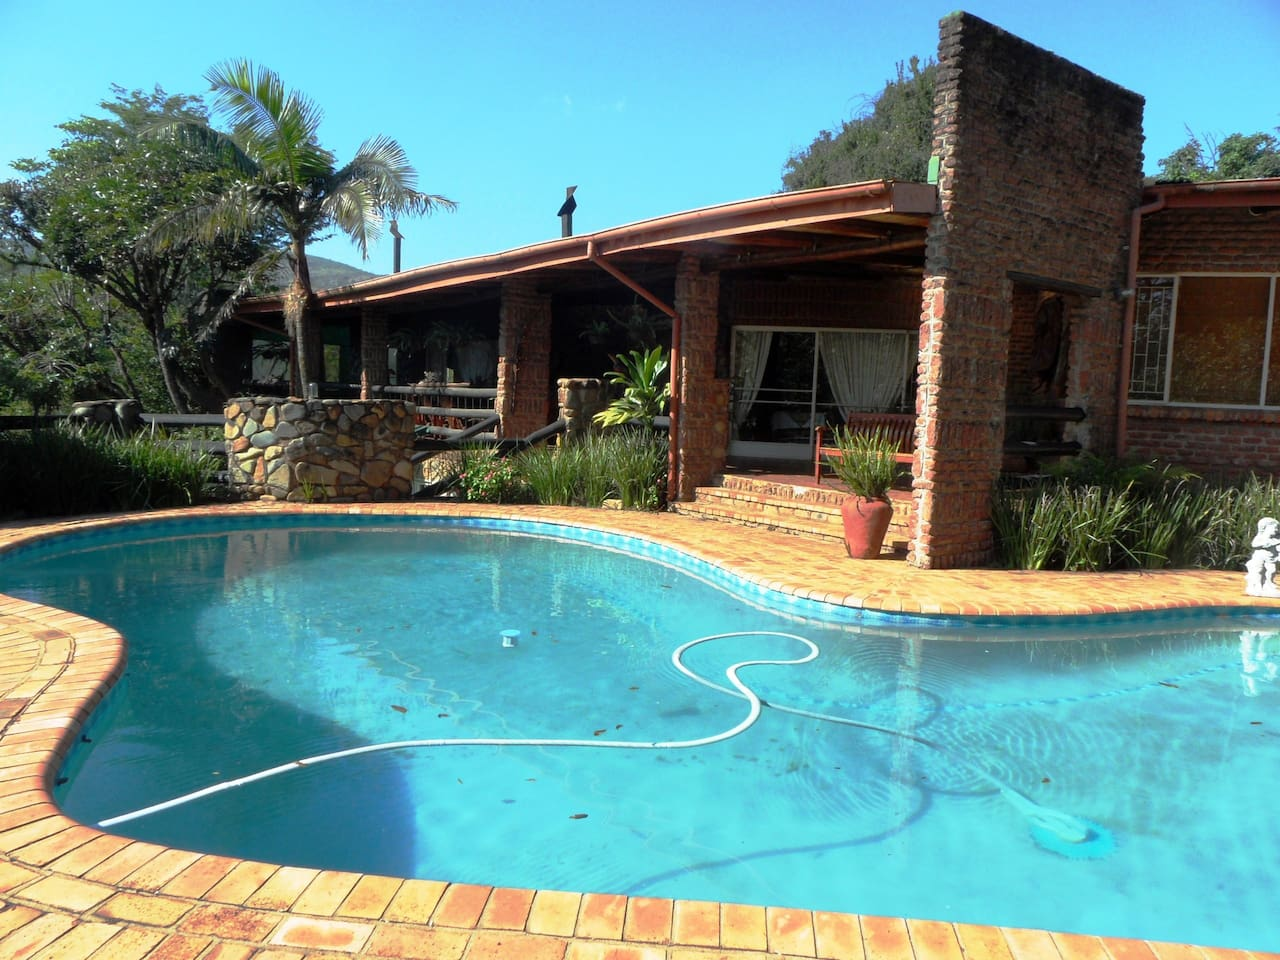 The house overlooks a sparkling pool